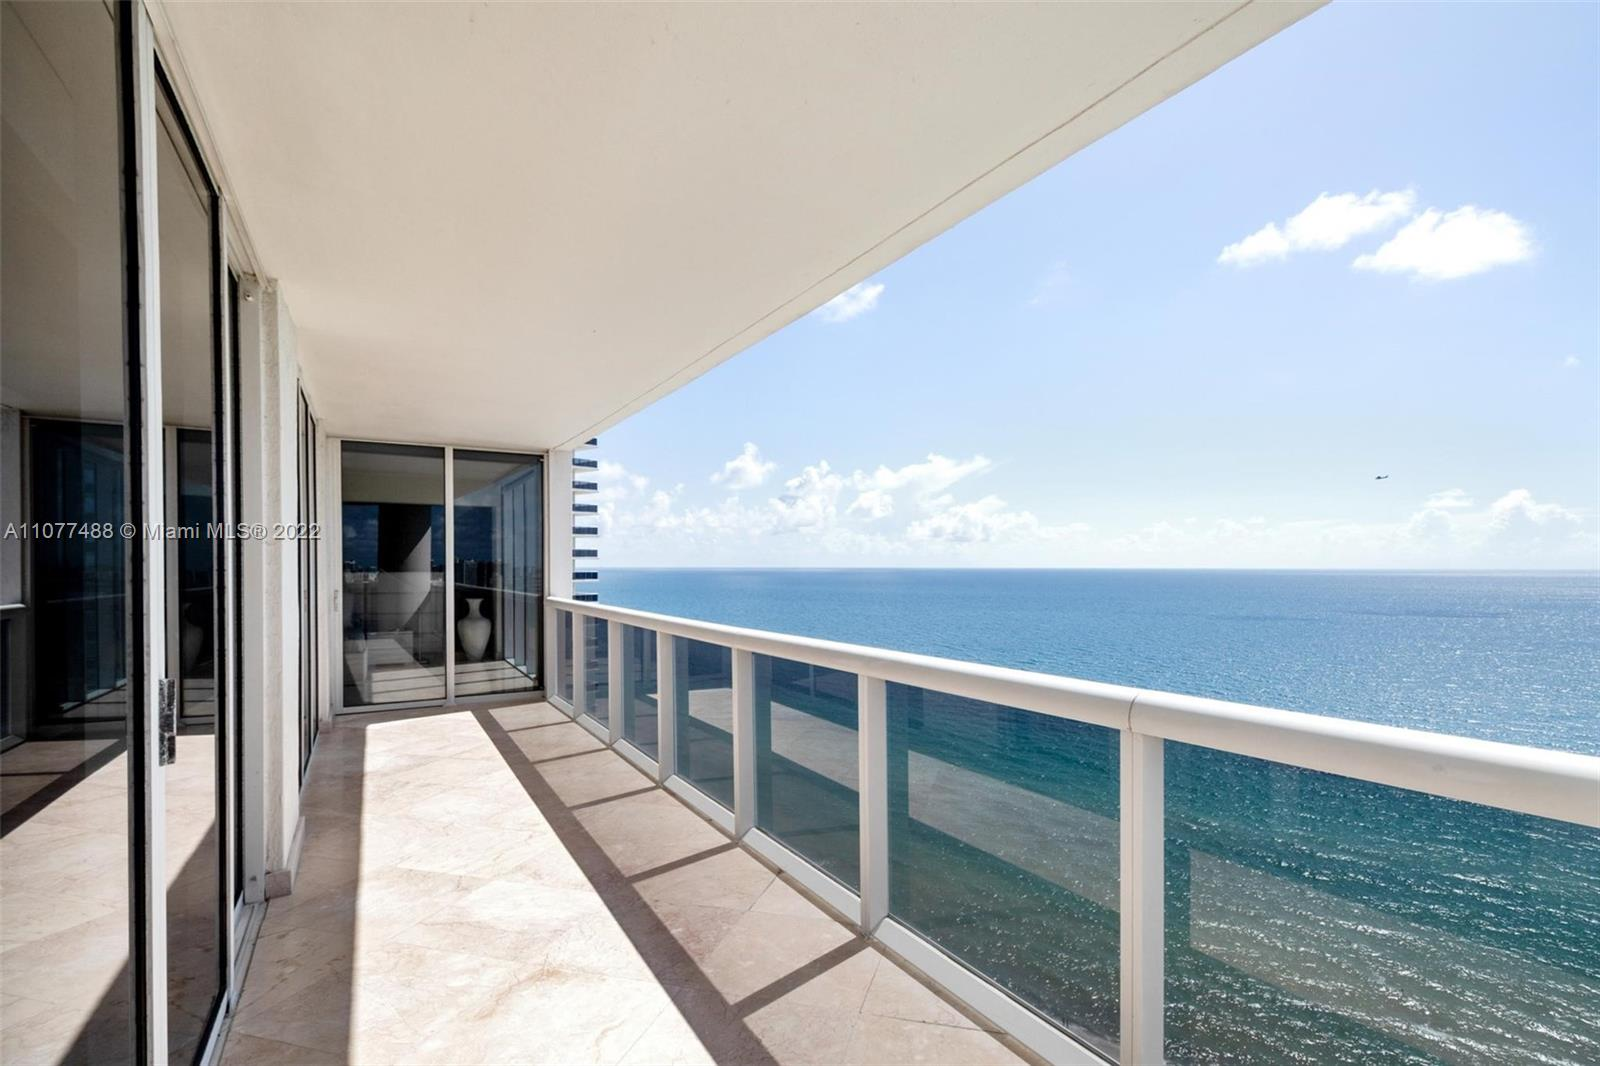 Coveted SE corner with unobstructed direct ocean views that extend all the way to Golden Beach, Sunny Isles and more, best views in all of Beach Club with a long list of luxurious upgrades from this spectacular Residence designed with elegant and timeless finishings, Marble floors and kitchen and Bath remodeled, new appliances, electrical blinds. Enormous wrap around terrace,  5-Star resort-like amenities, full-time concierge and security, 24-hour valet, 5 ocean front pools, hot tup, and a 50,000 SF fitness center and spa.  Beach front restaurant.